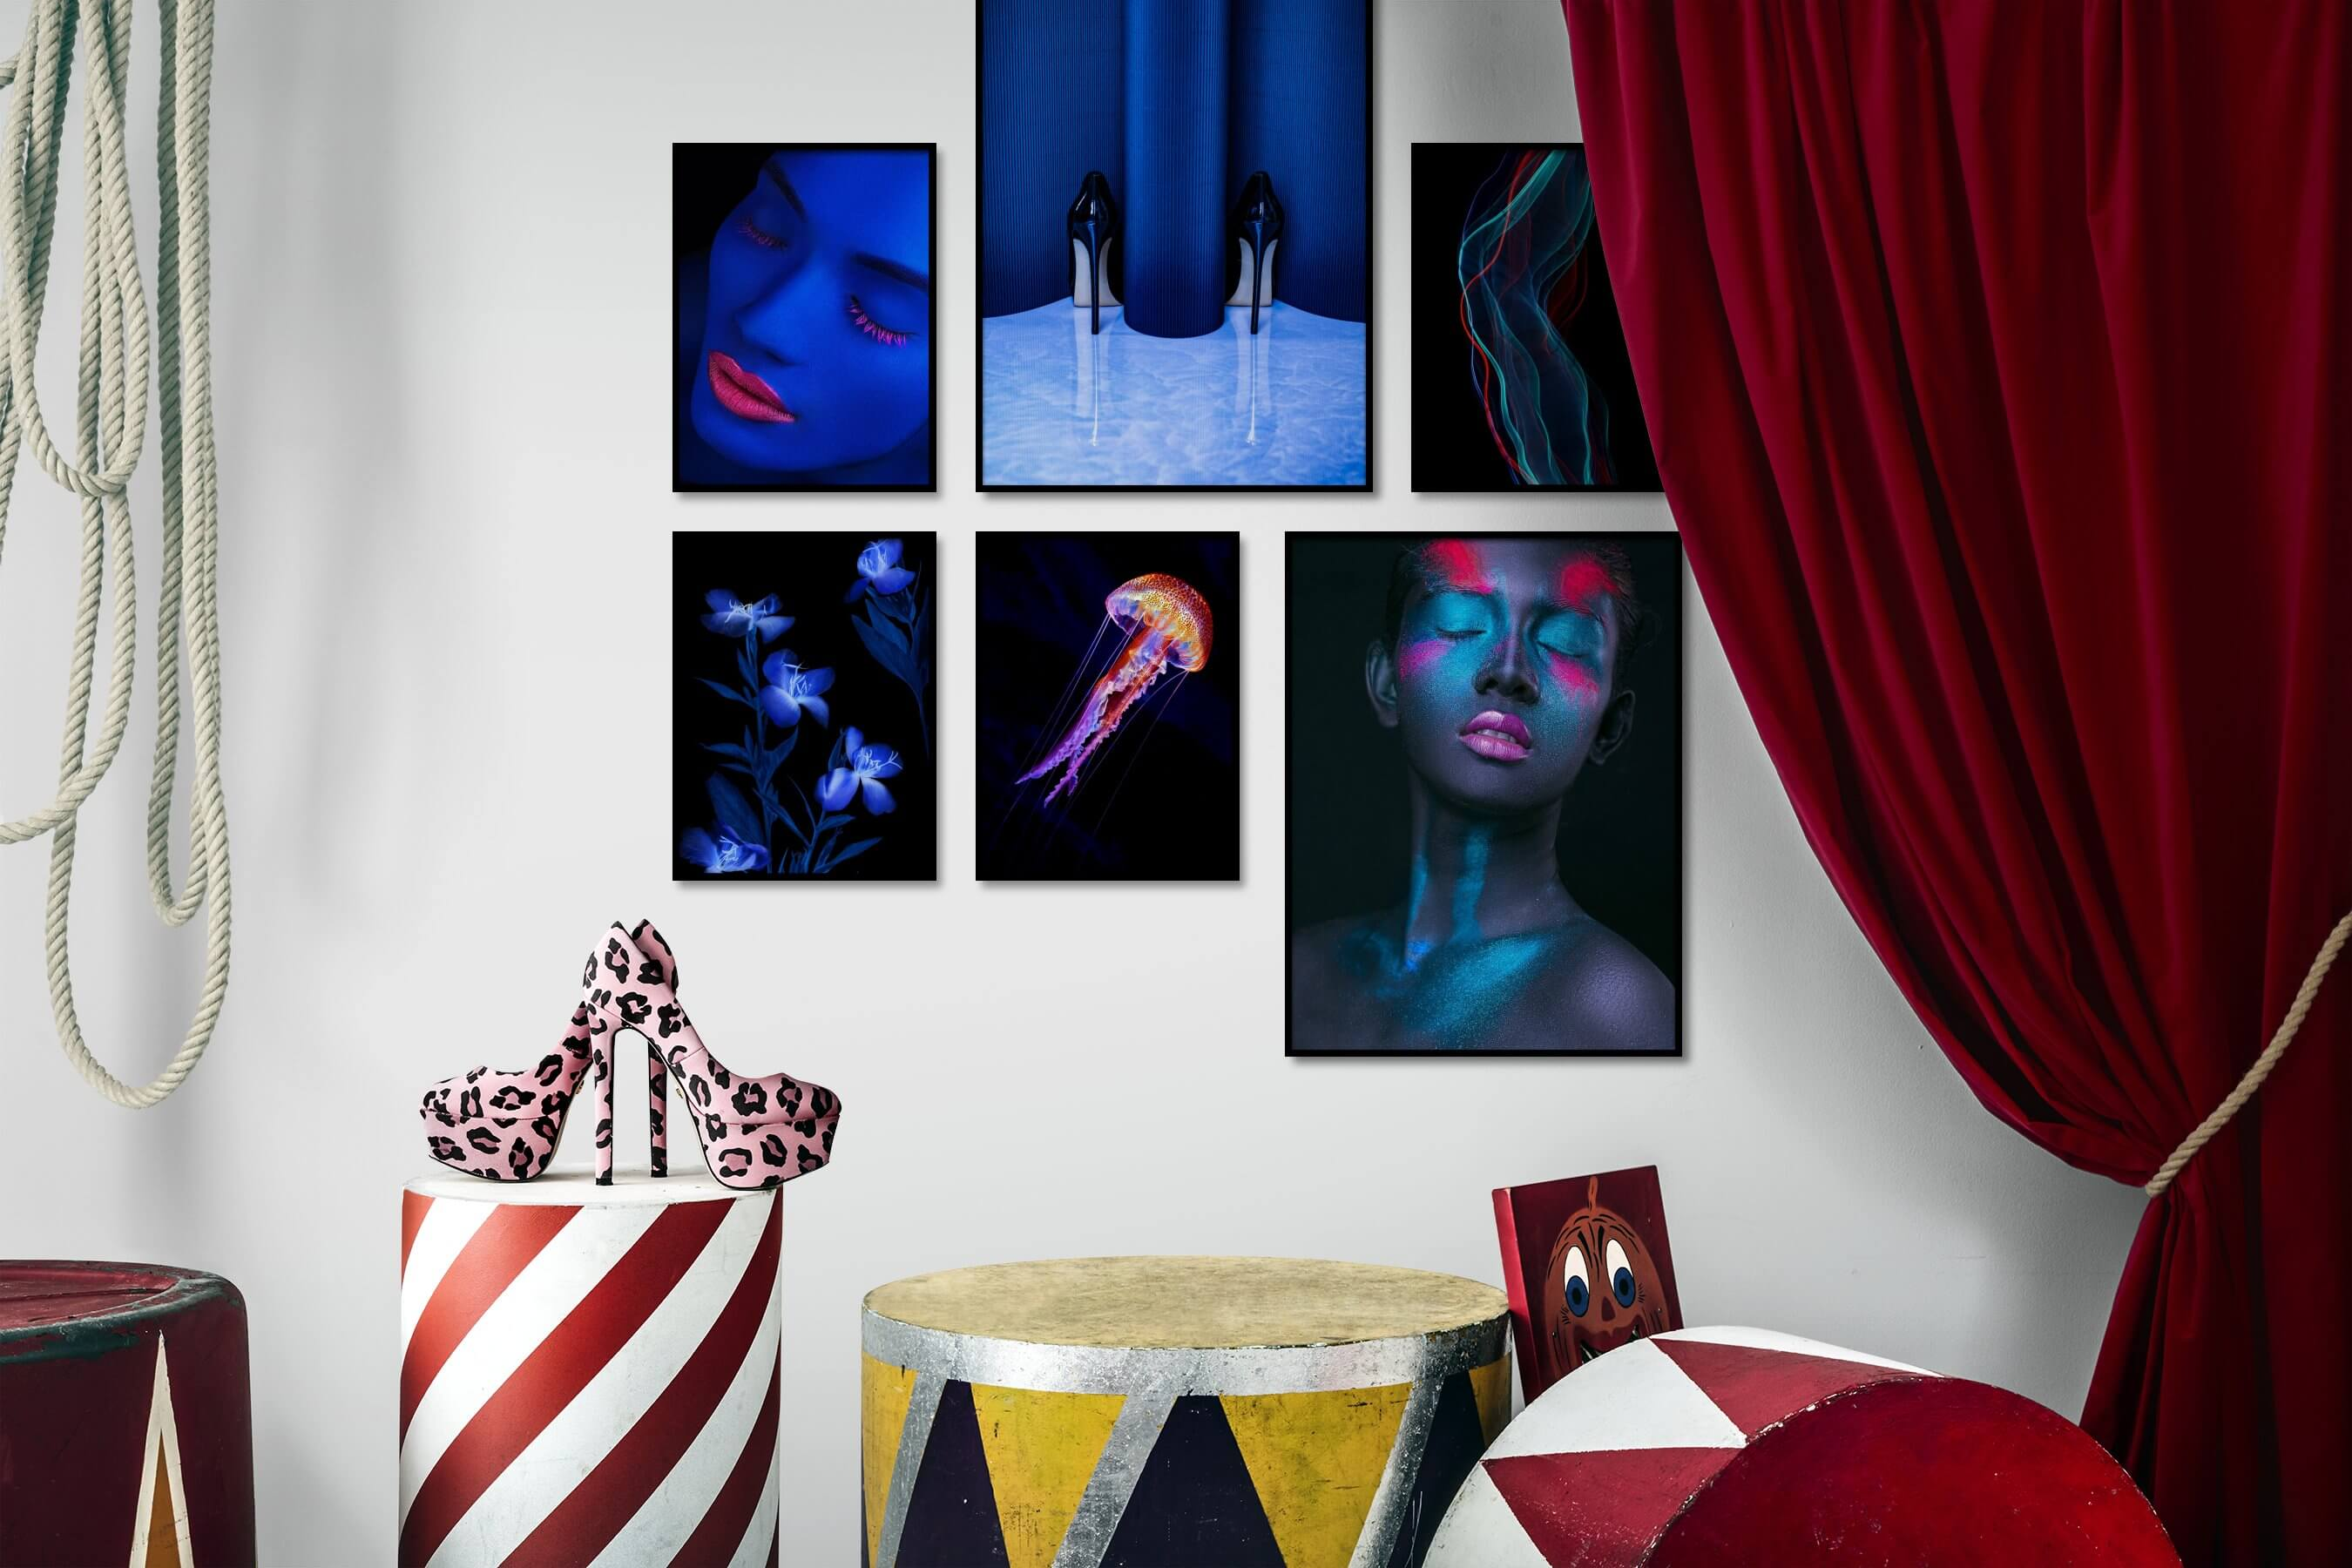 Gallery wall idea with six framed pictures arranged on a wall depicting Fashion & Beauty, Dark Tones, Colorful, For the Moderate, Flowers & Plants, For the Minimalist, and Animals